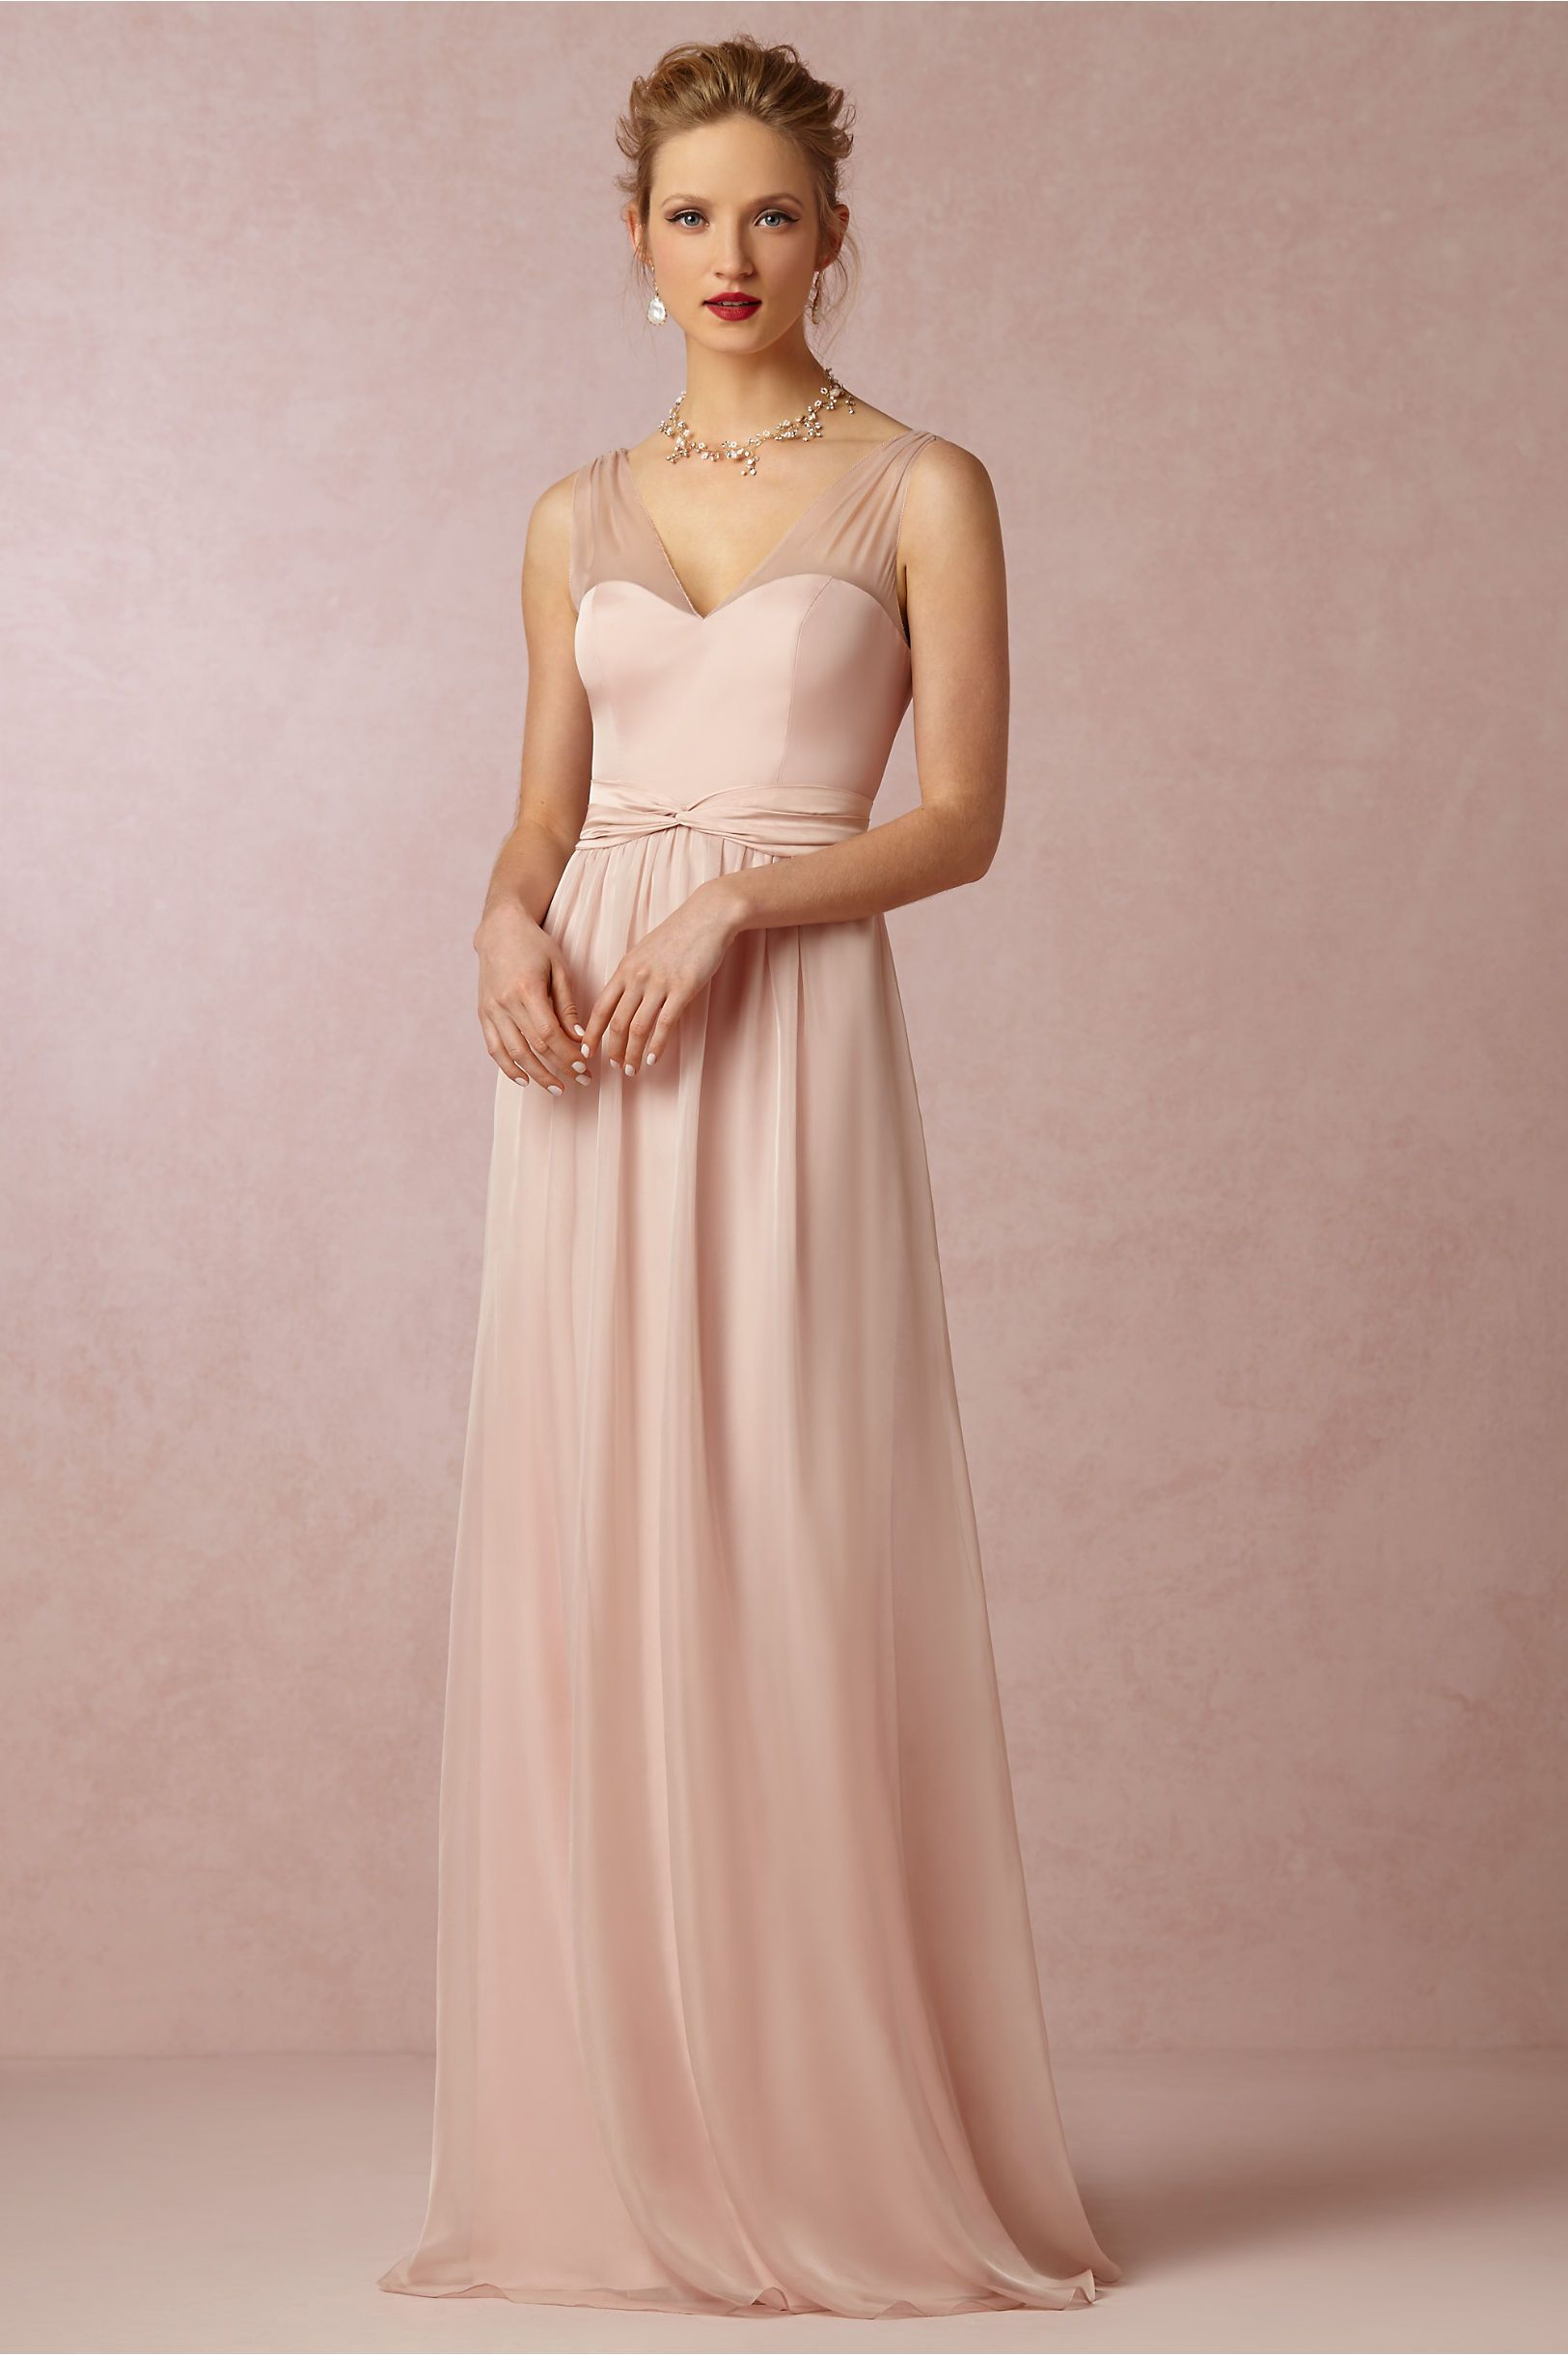 Bridesmaid Josephine Dress from BHLDN | If and when I marry <3 ...